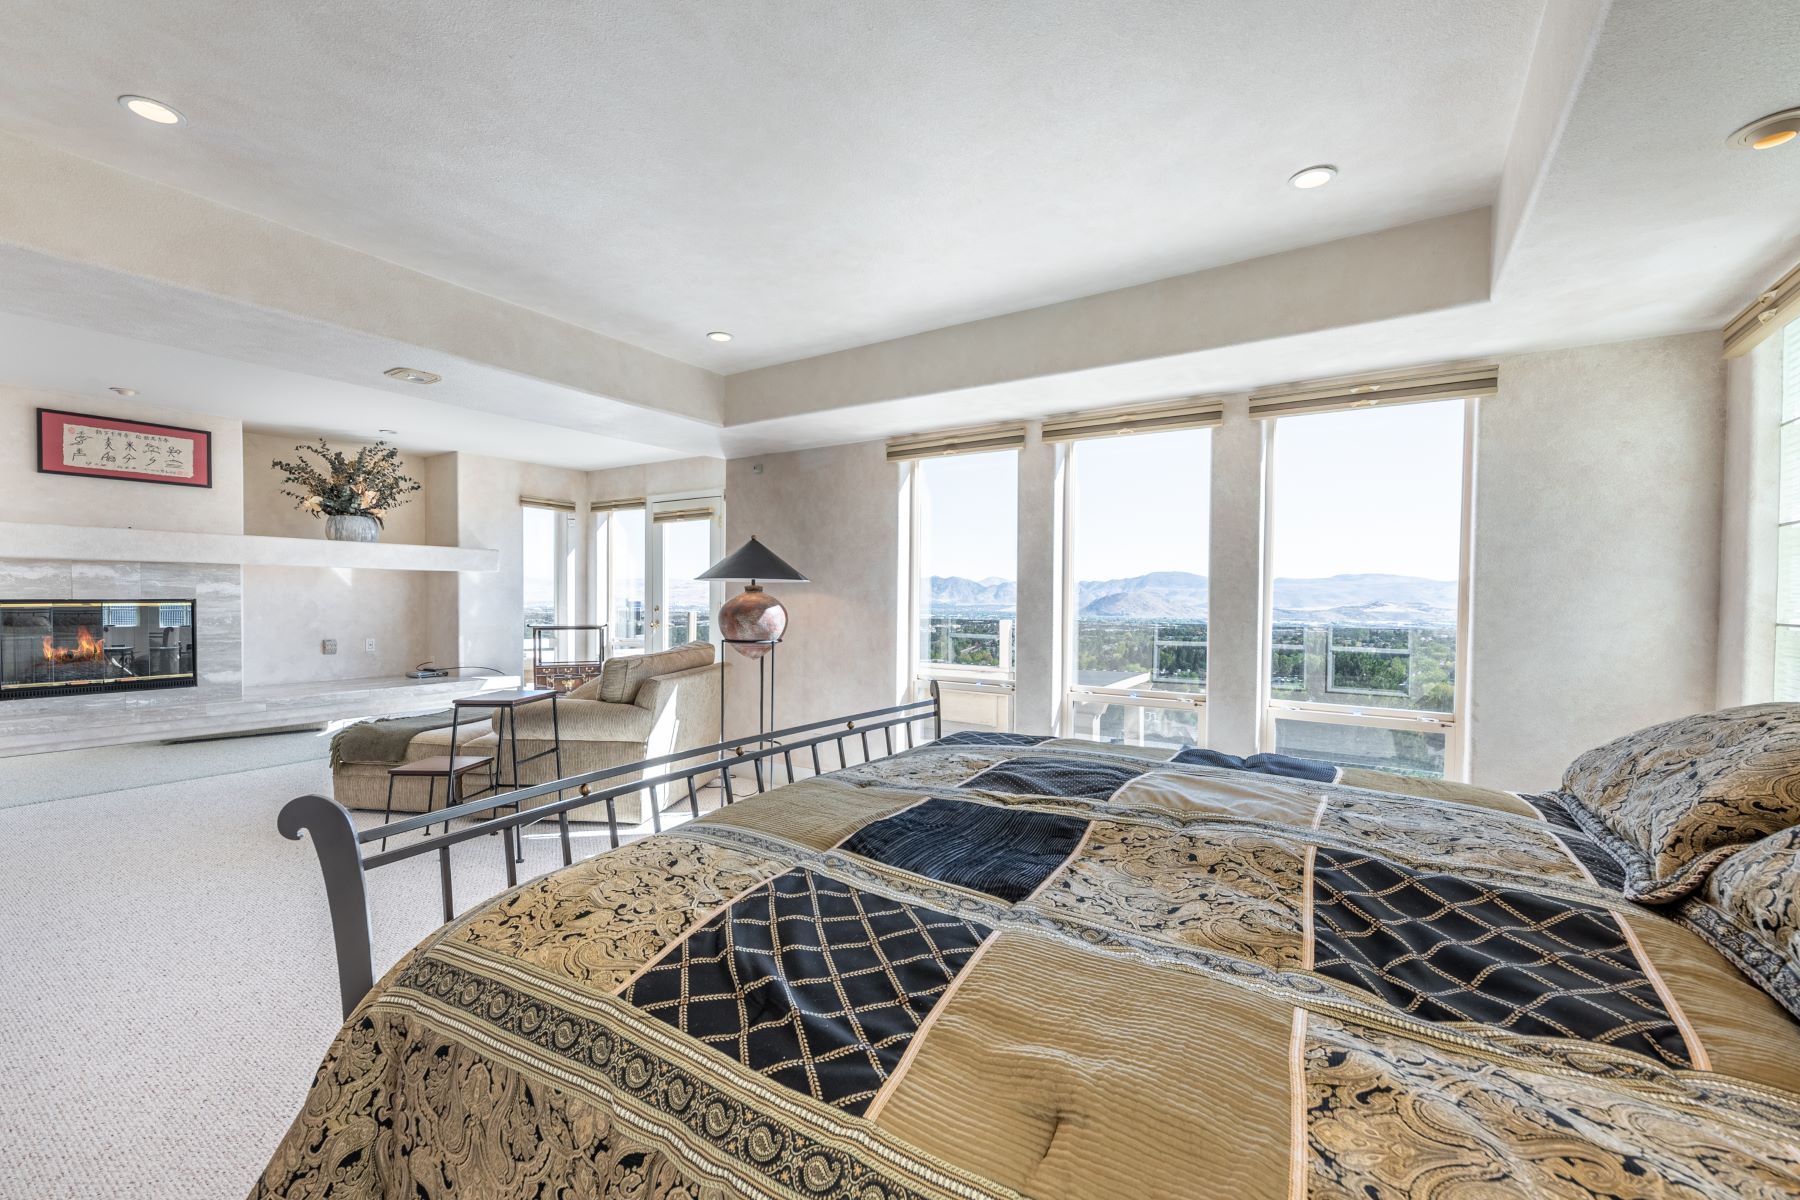 Additional photo for property listing at Exclusively Gated Lakeridge Shores 2300 Crow's Nest Reno, Nevada 89519 United States